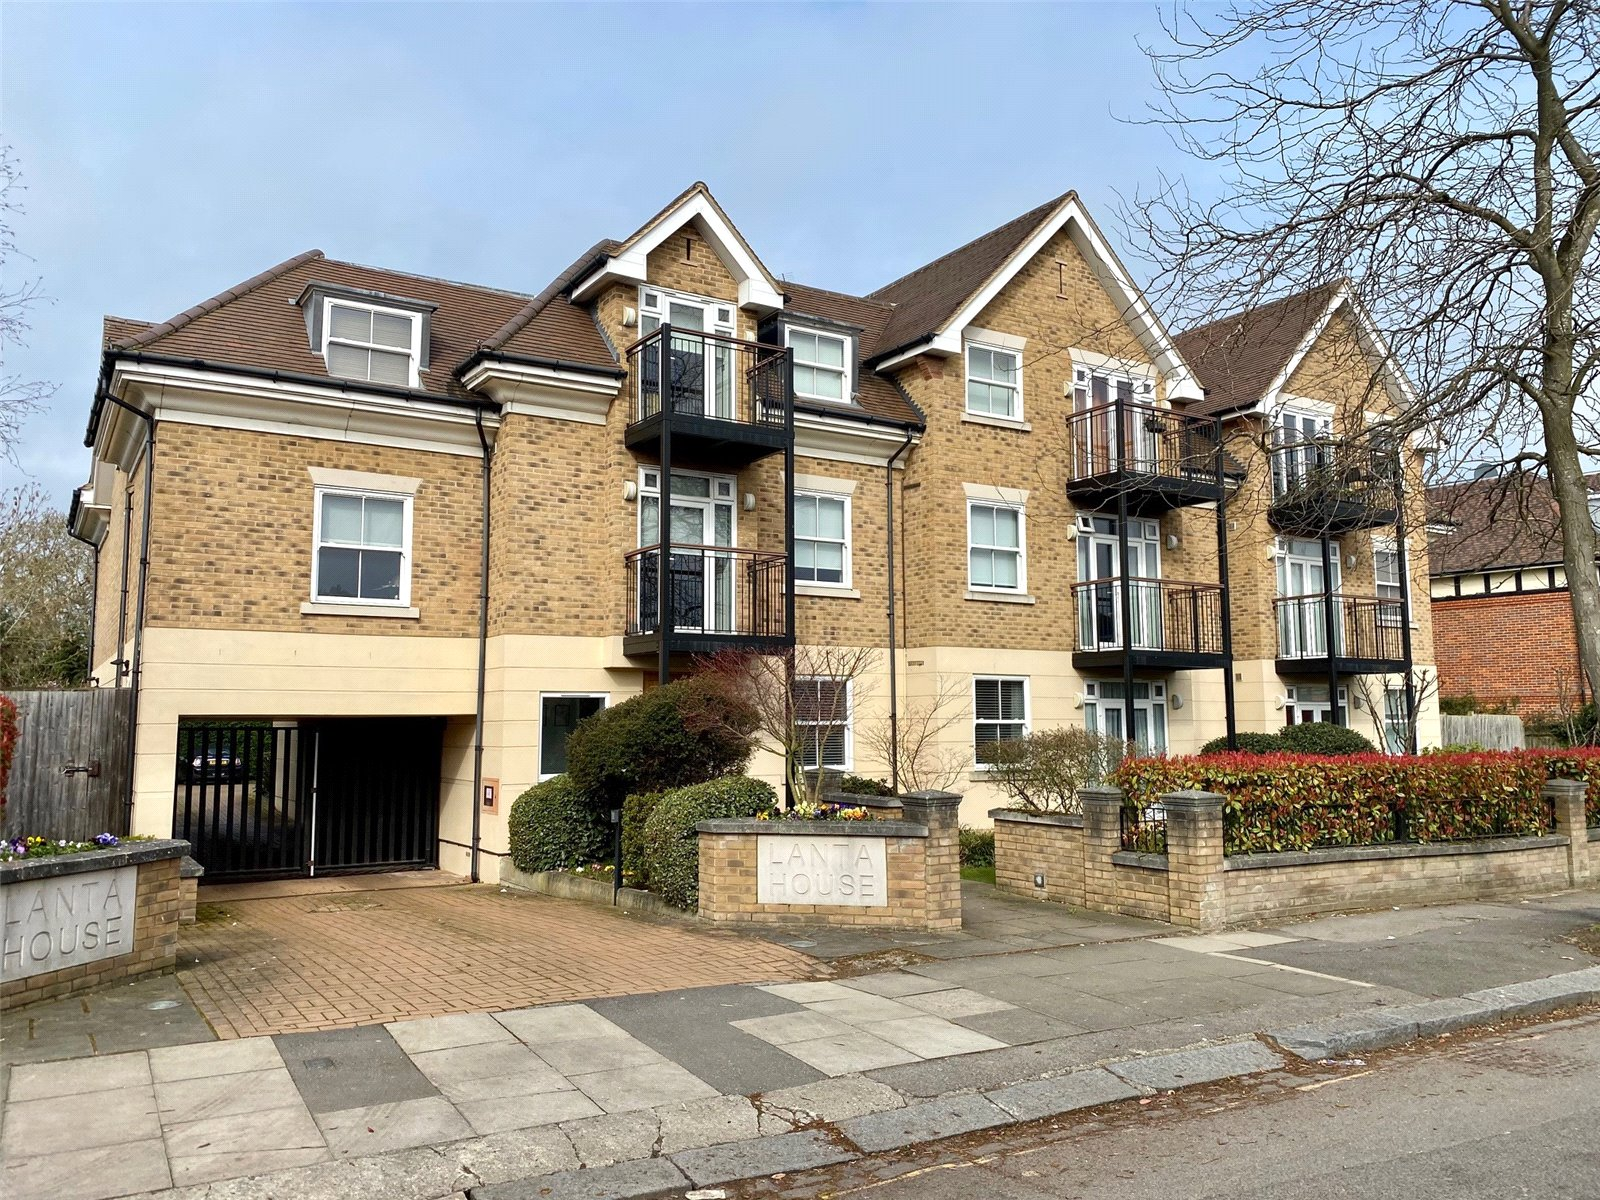 2 bed apartment for sale in Mill Hill East, NW7 1ND, NW7